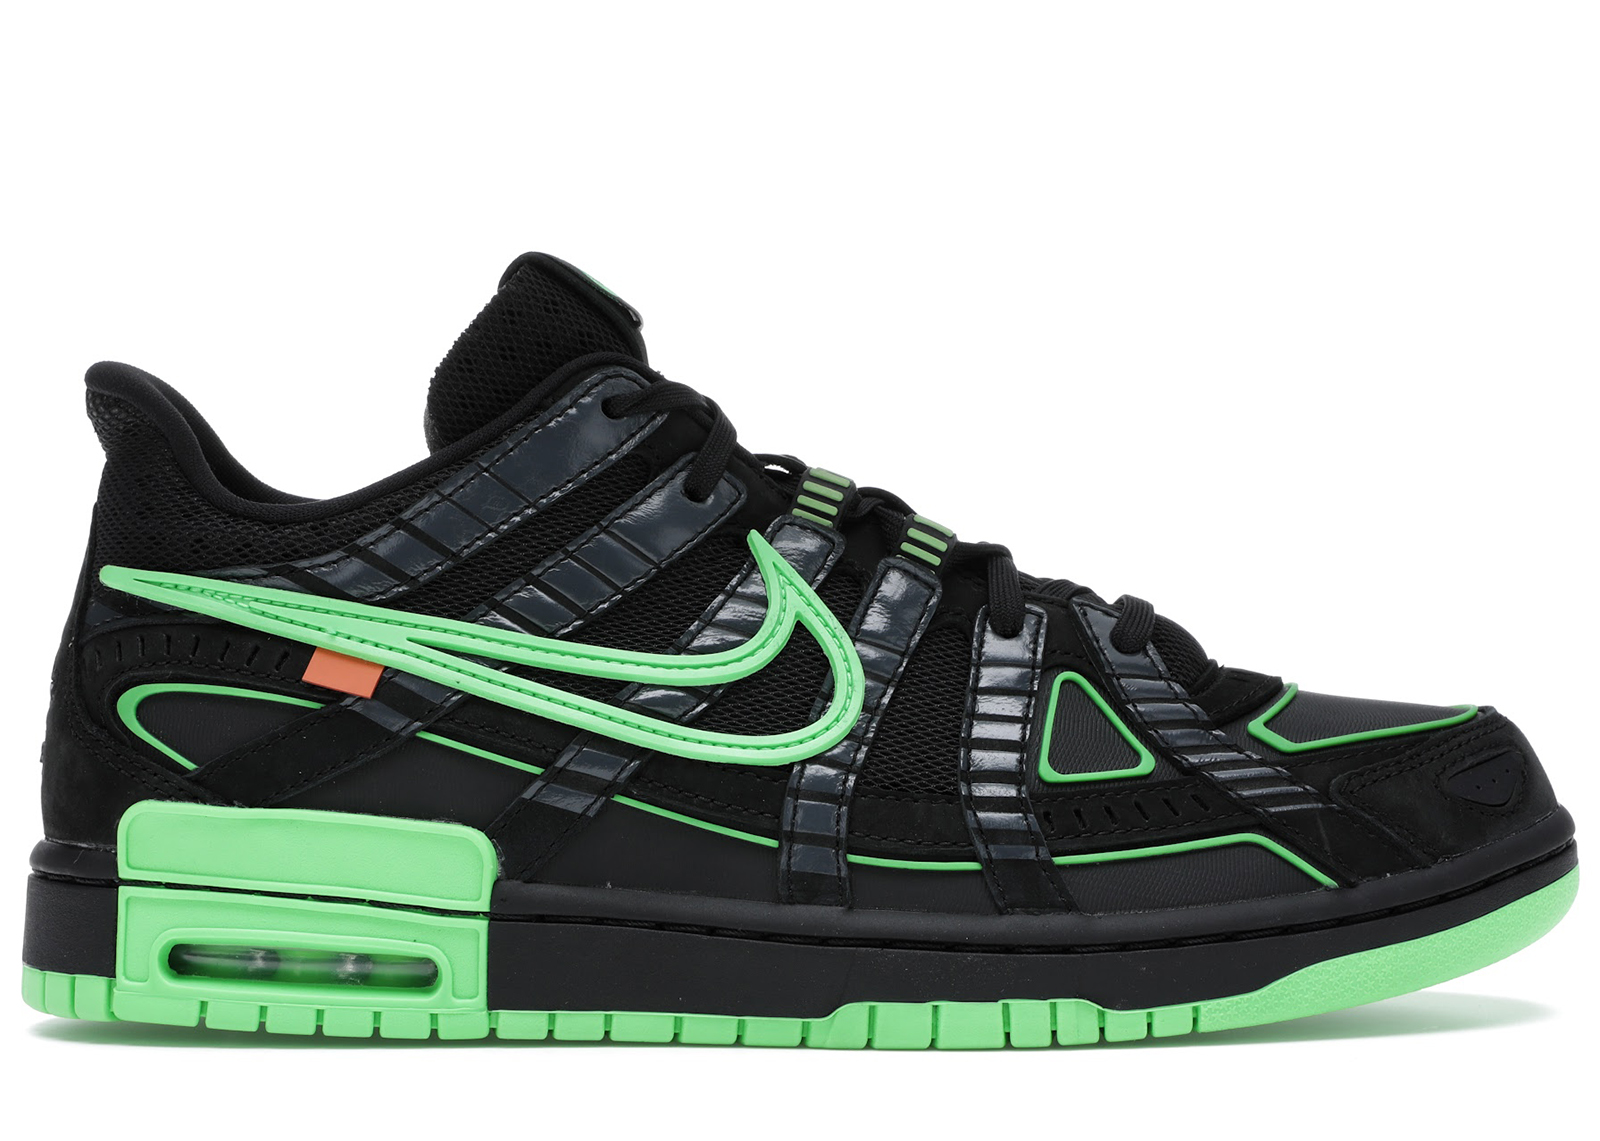 Nike Air Rubber Dunk Off-White Green